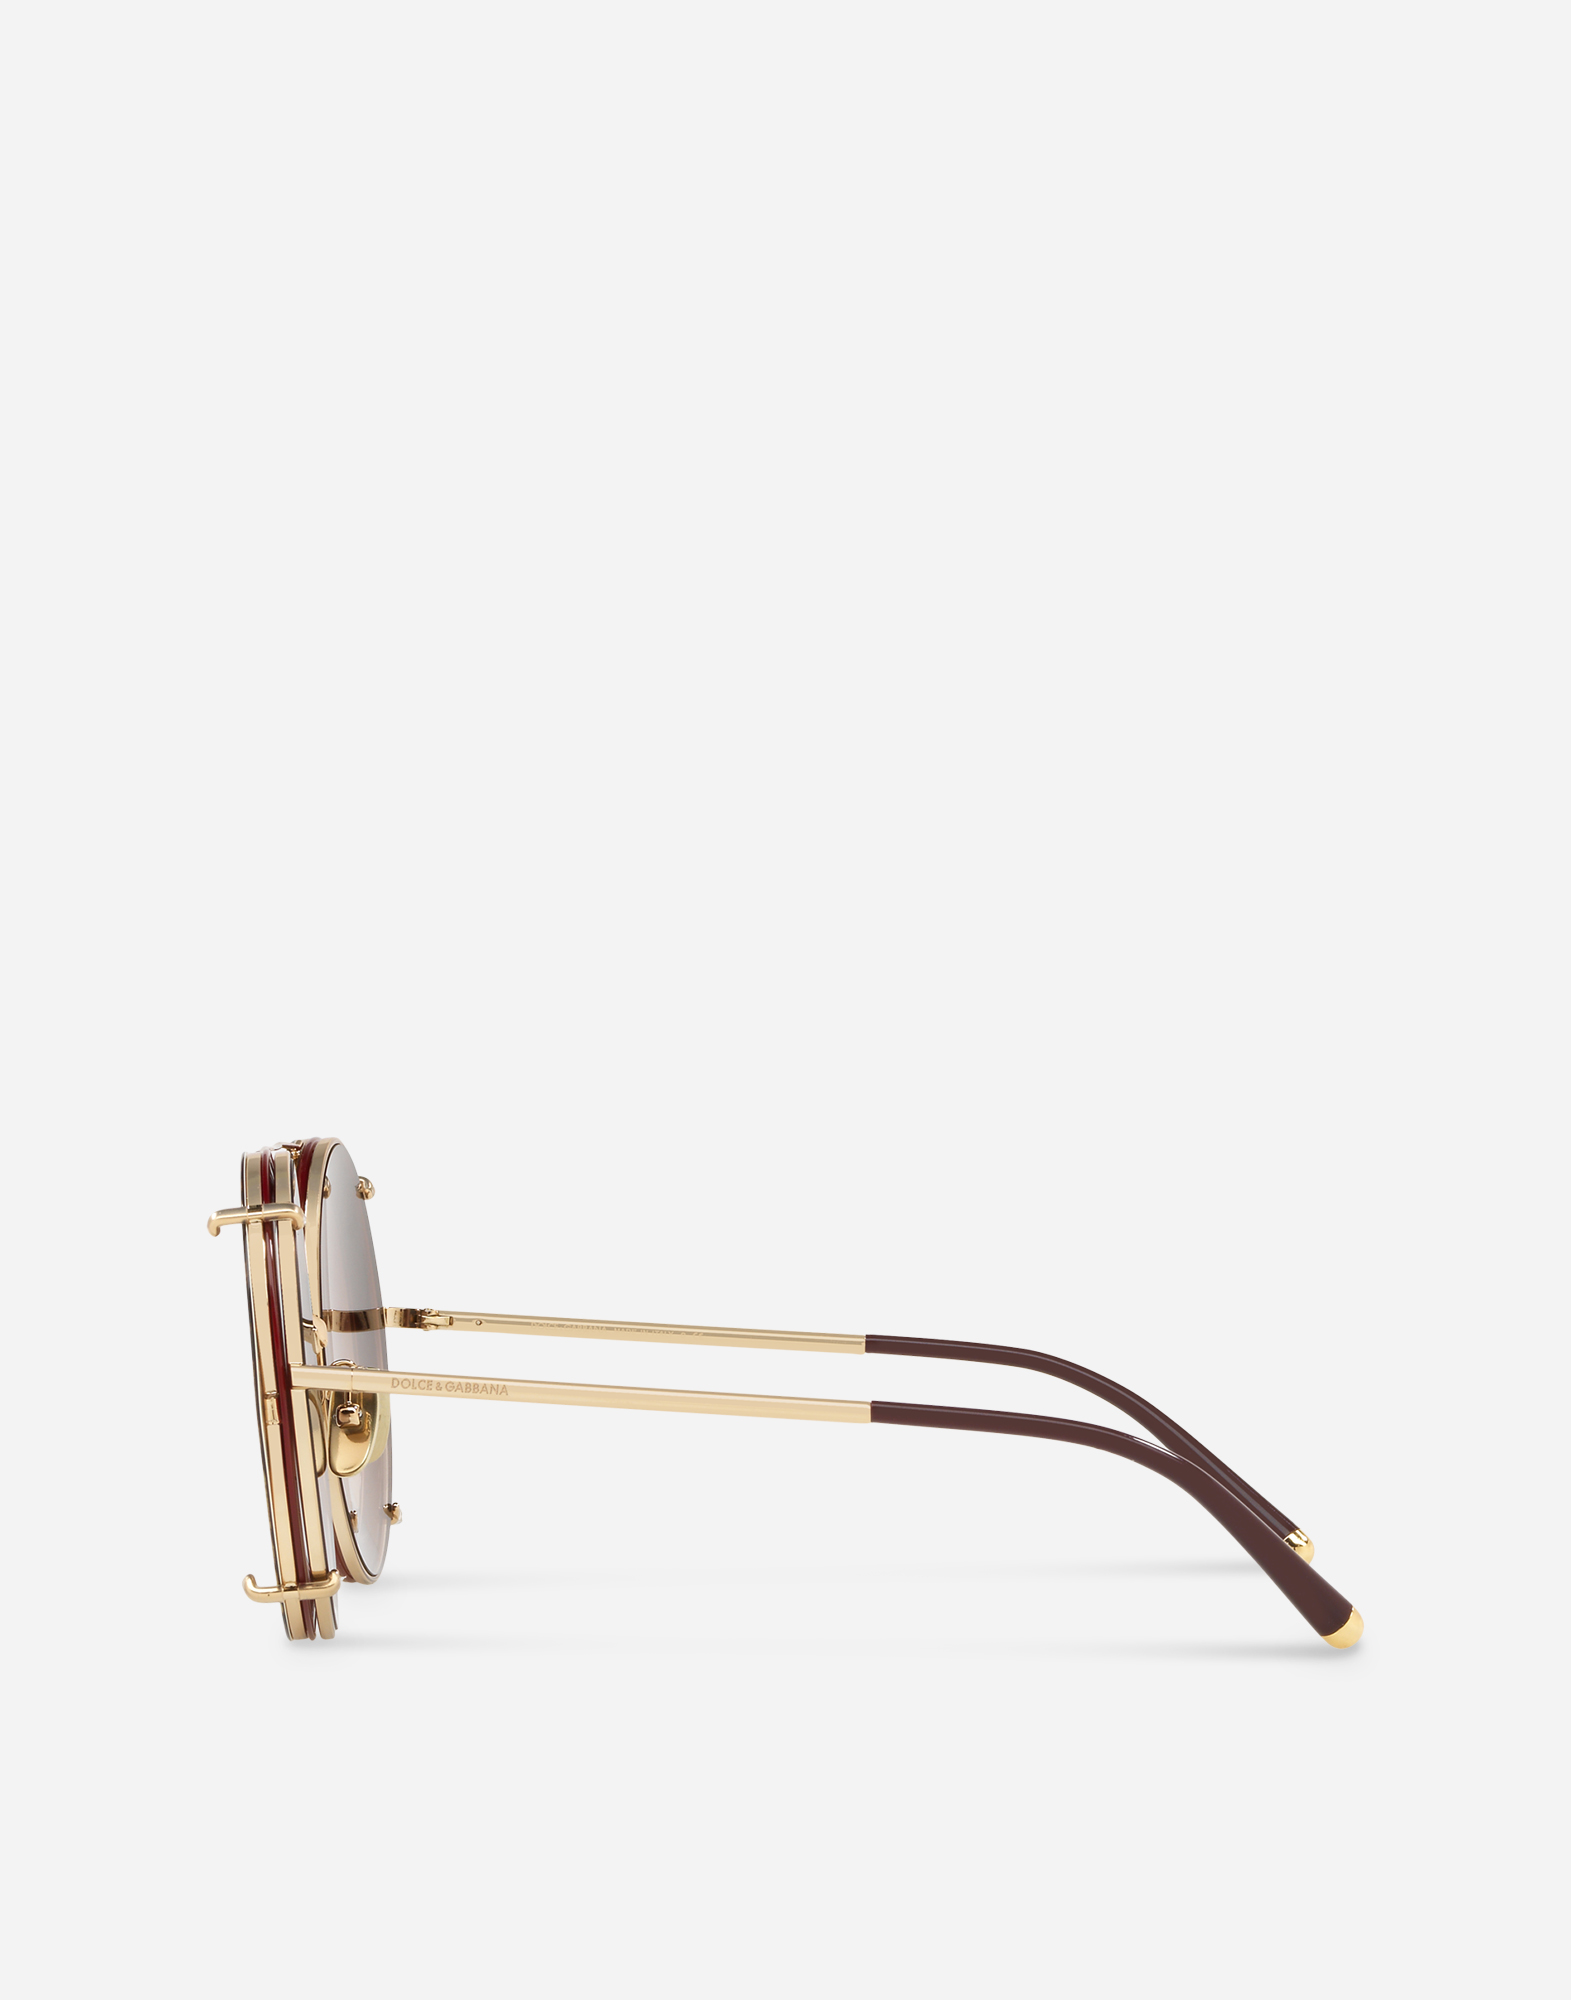 ROUND SUNGLASSES IN GOLD METAL WITH CLIP-ONS IN LEO PRINT